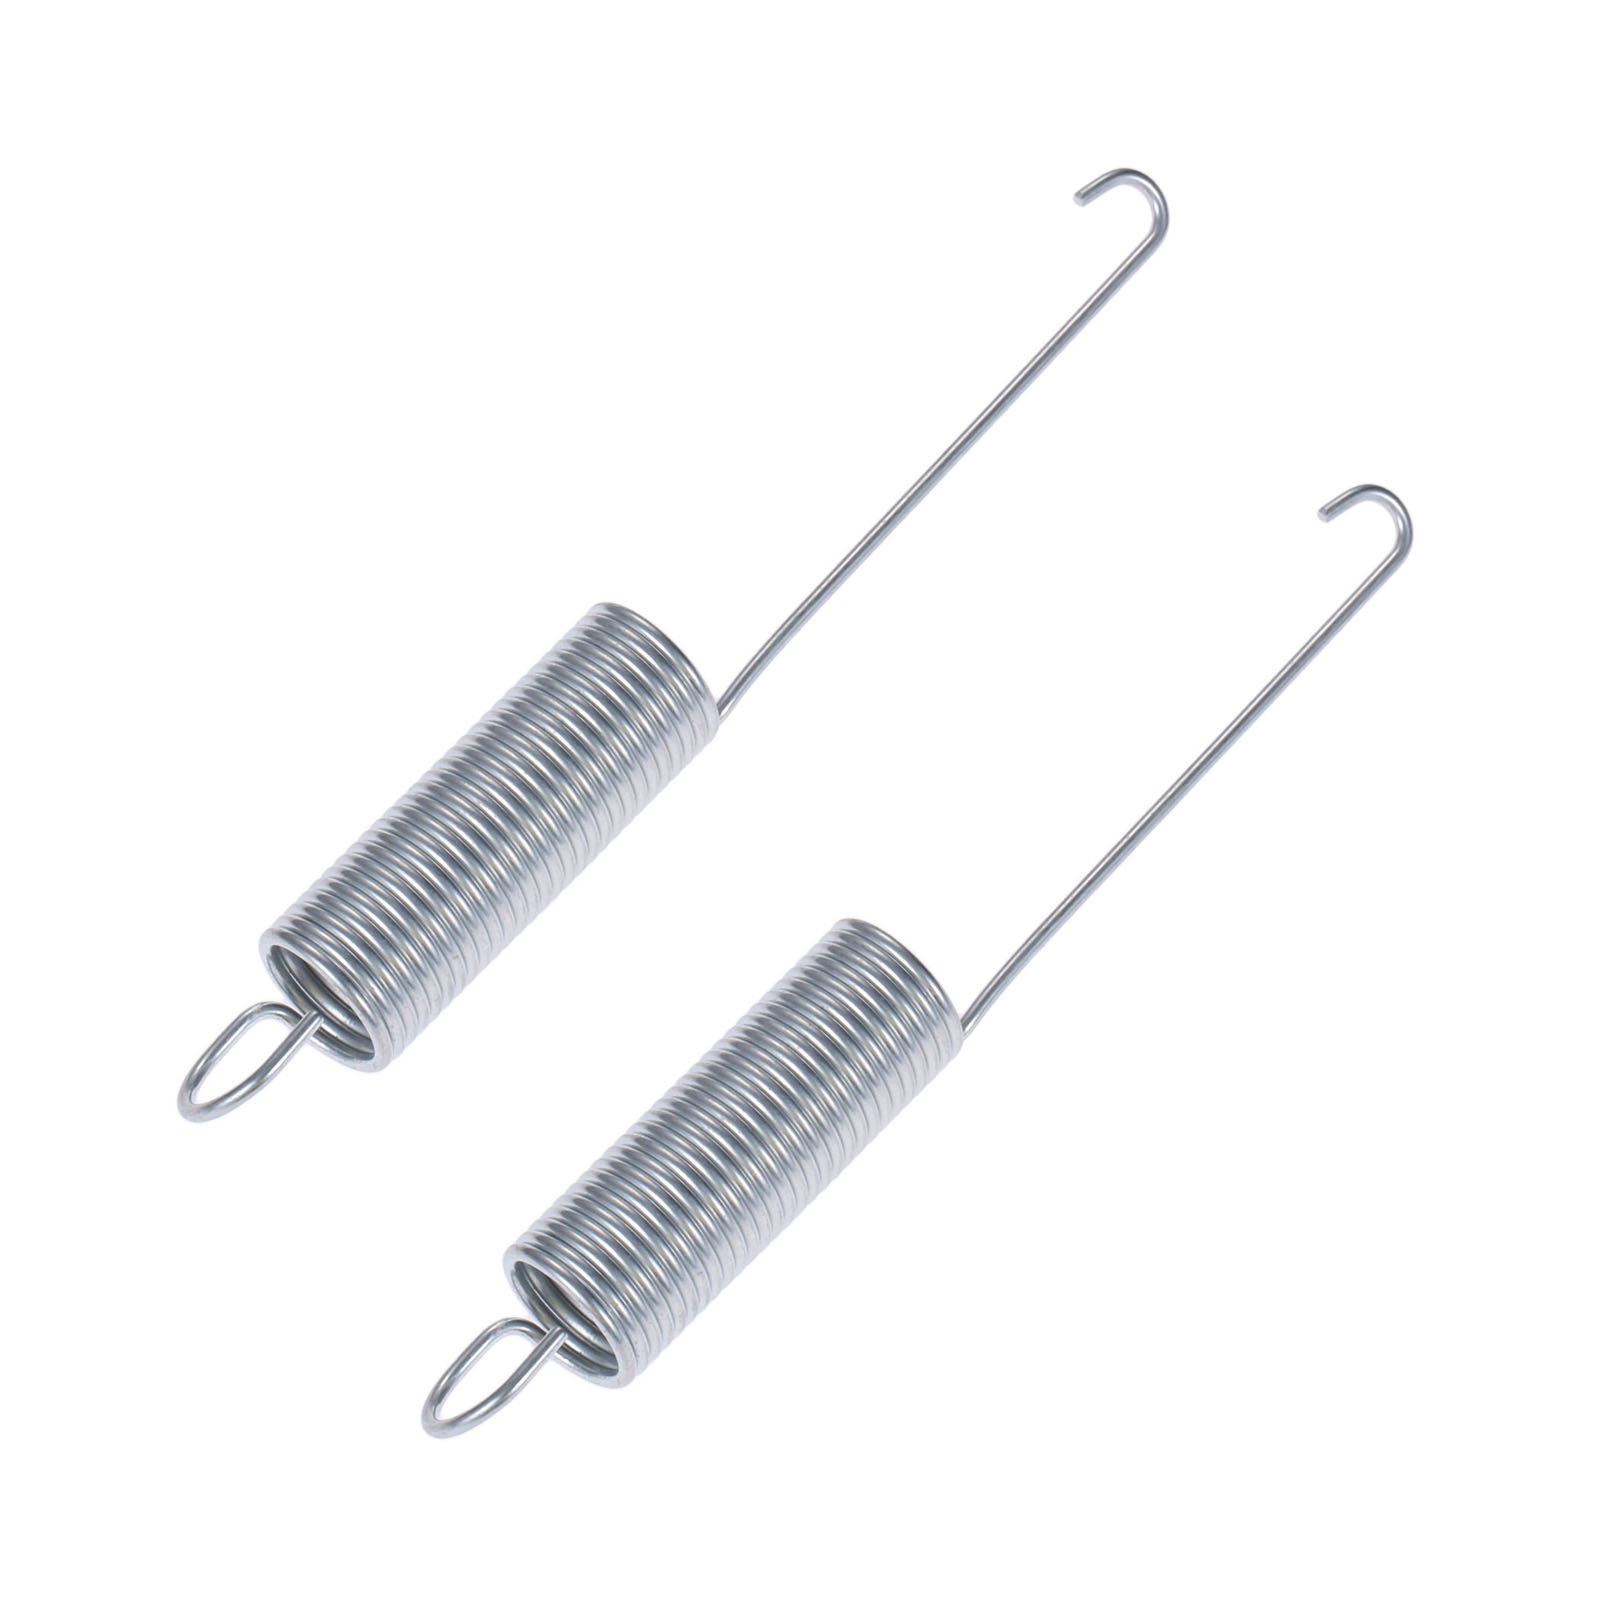 2Pcs W10250667 Washer Suspension Spring Tub Counterbalance for Whirlpool WPW10250667 PS2363196 Replacement Parts in Tool Parts from Tools